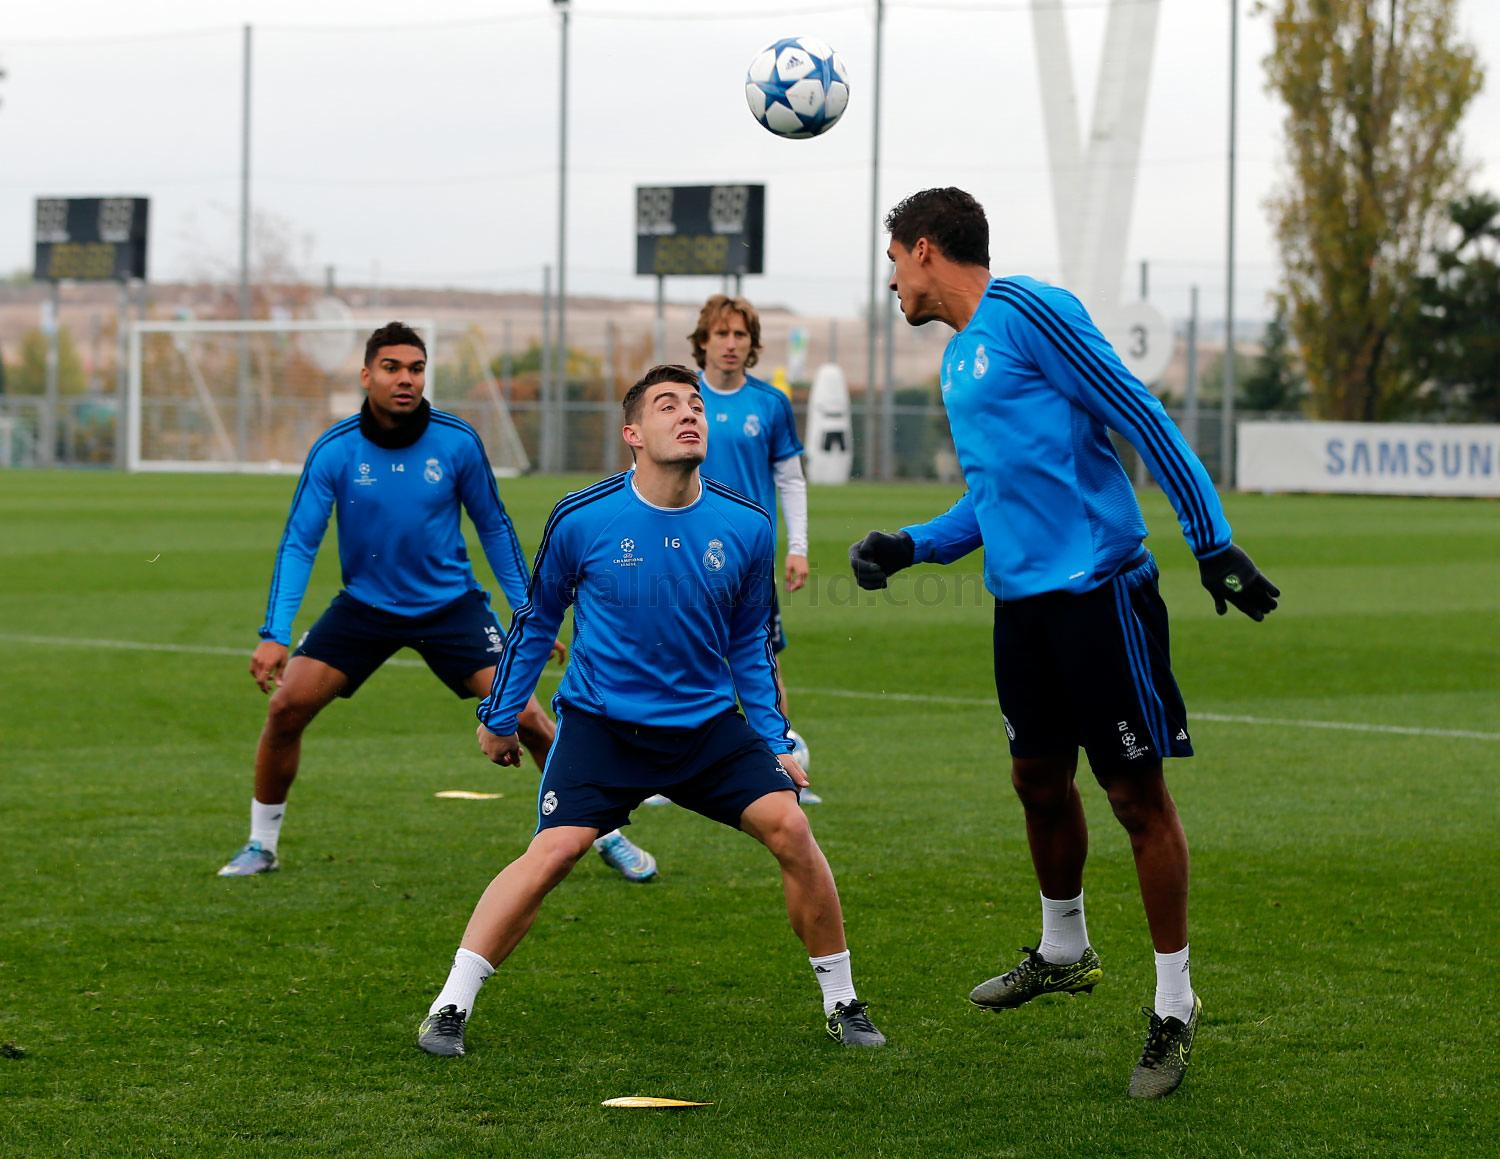 Real Madrid - Entrenamiento del Real Madrid - 03-11-2015